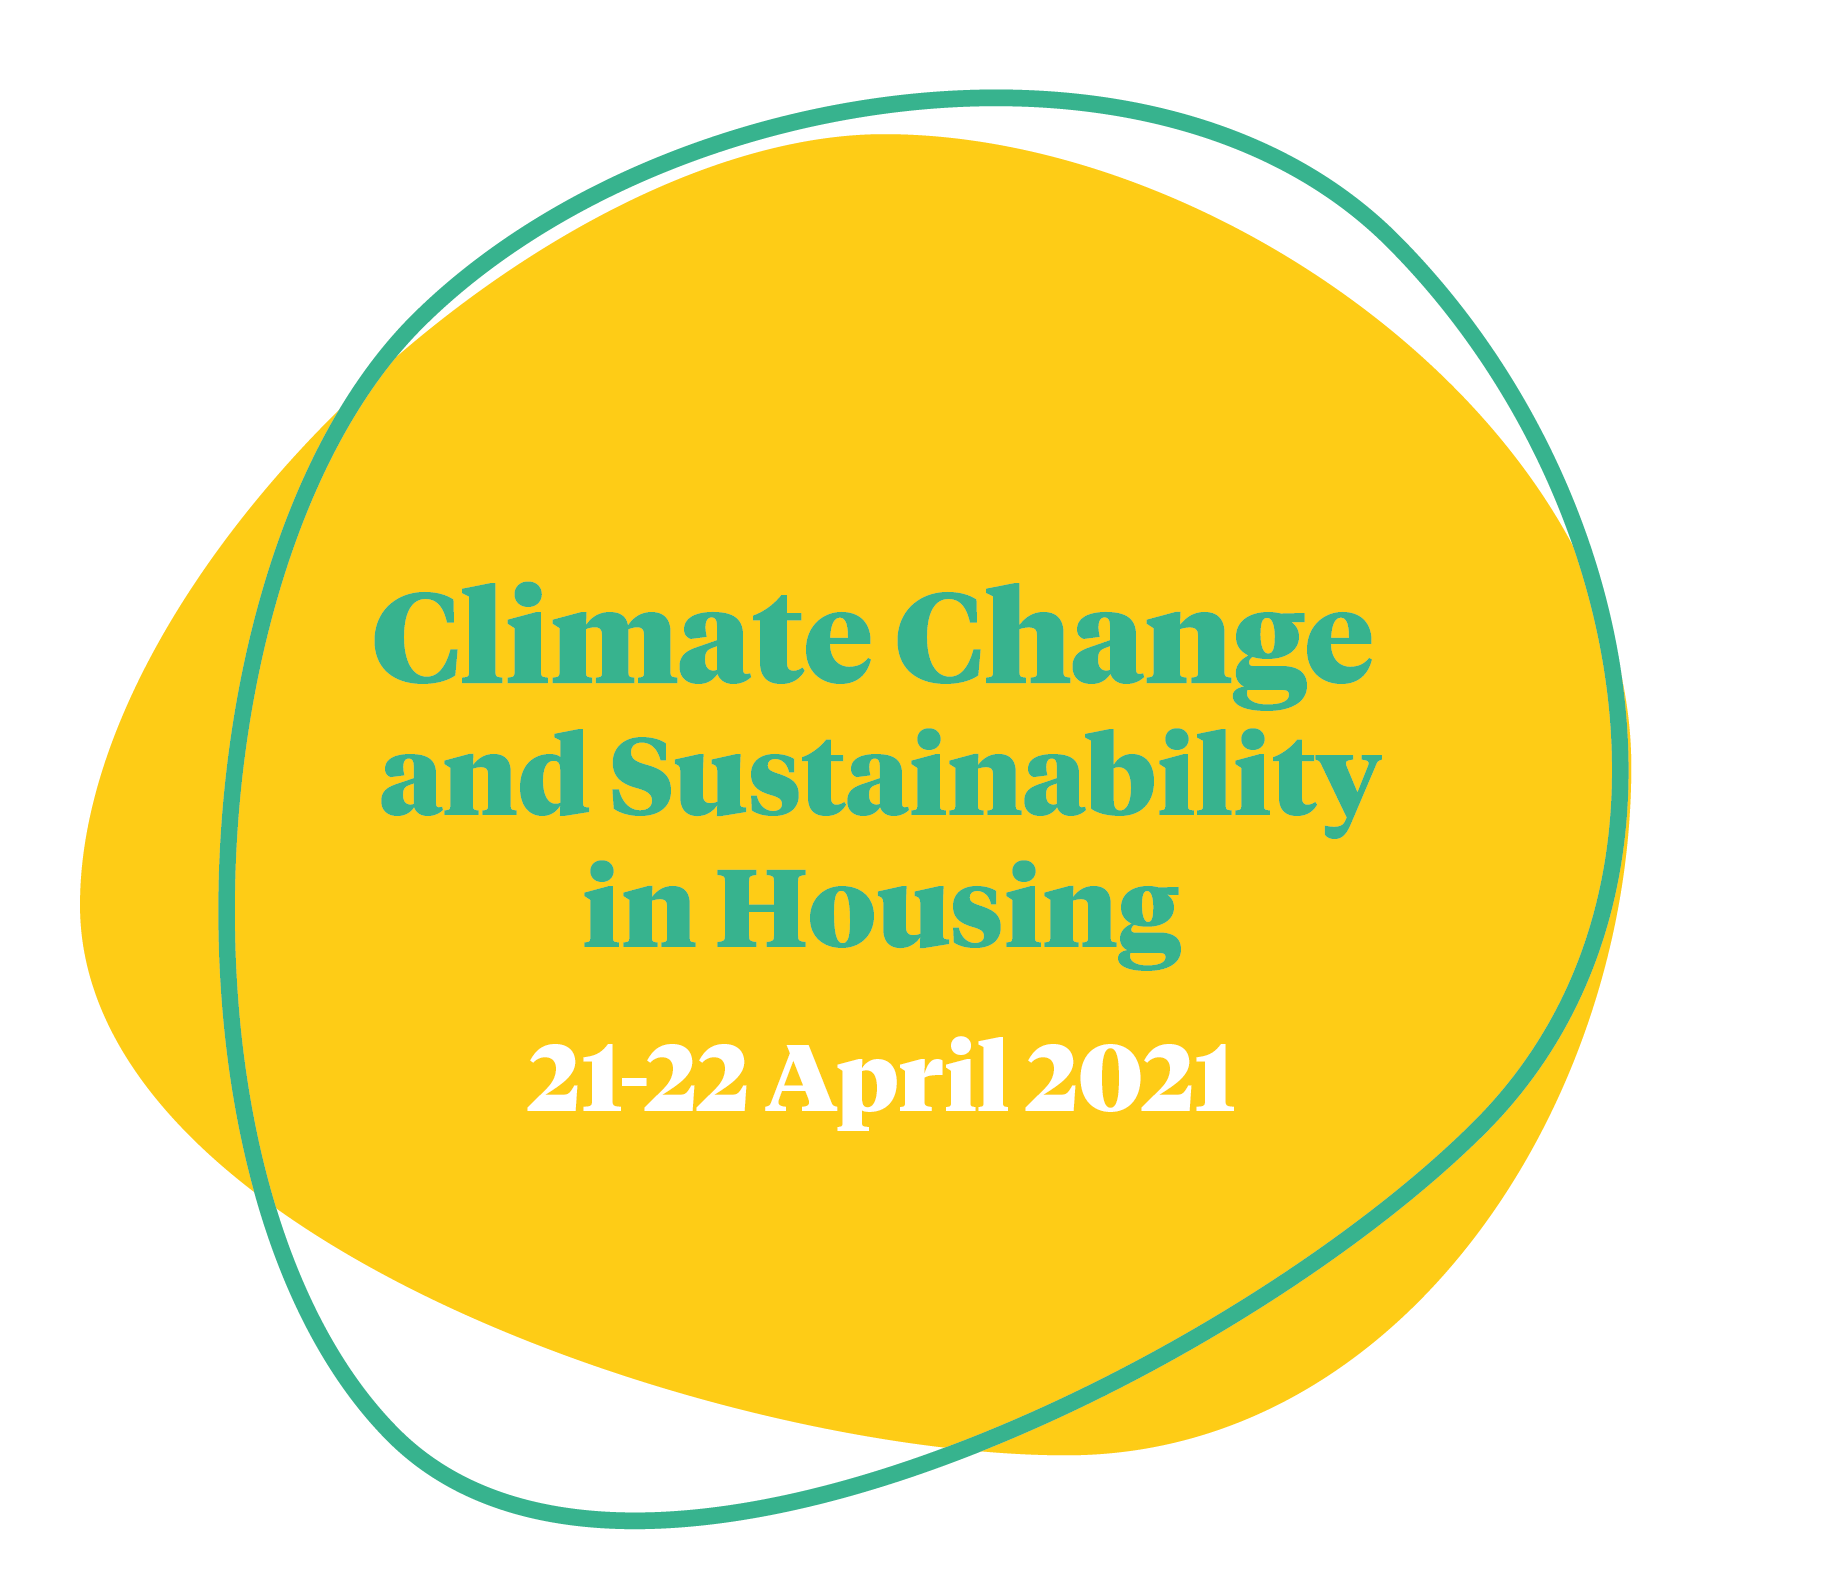 Climate Change and Sustainability in Housing 2021